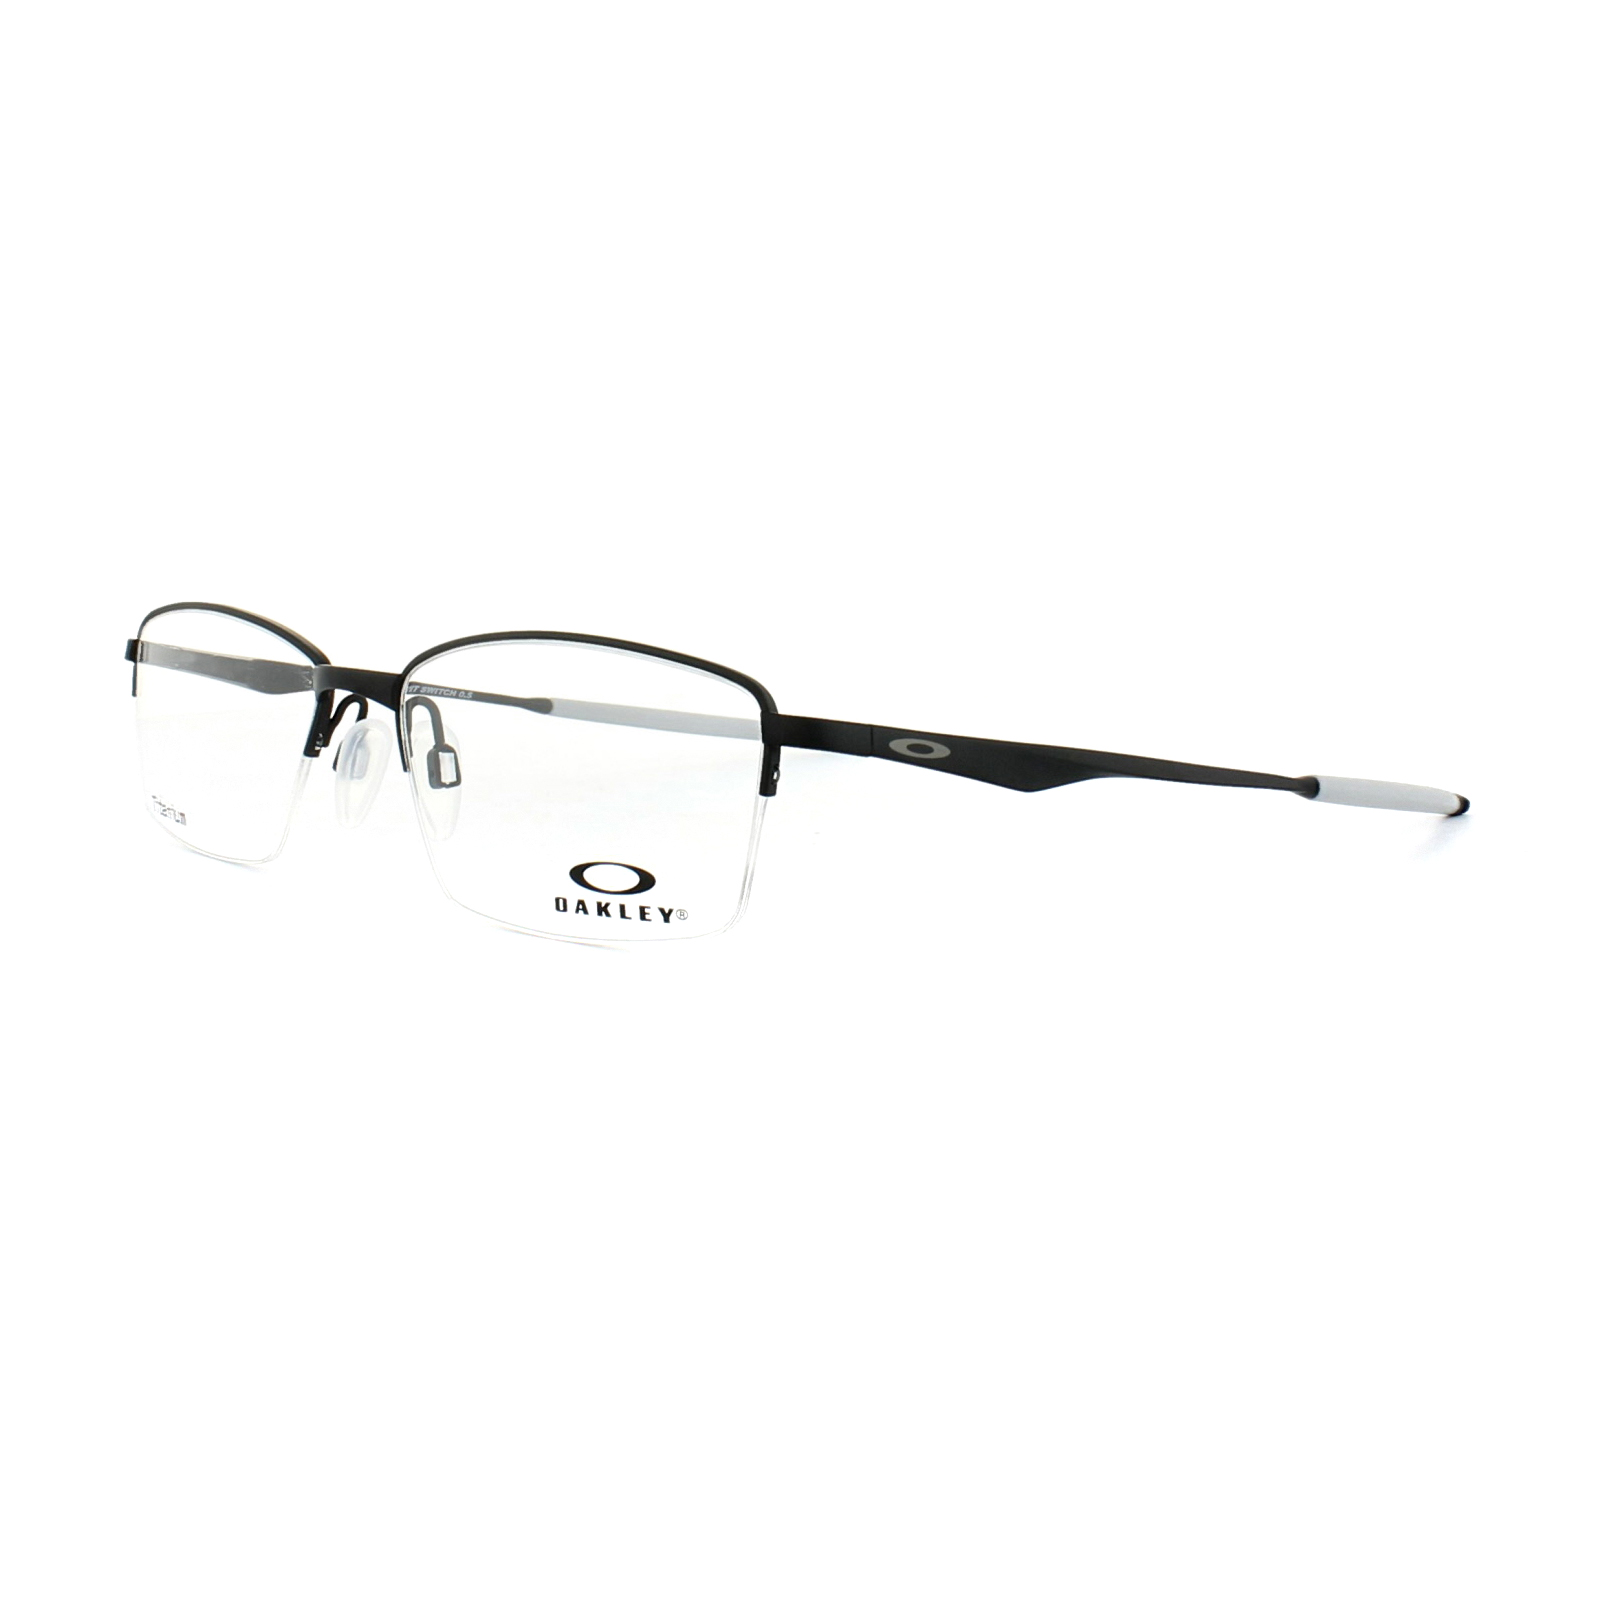 d31cce5cda2 ... ireland sentinel oakley glasses frames limit switch 0.5 ox5119 01 satin  black 6f5cf eb37f